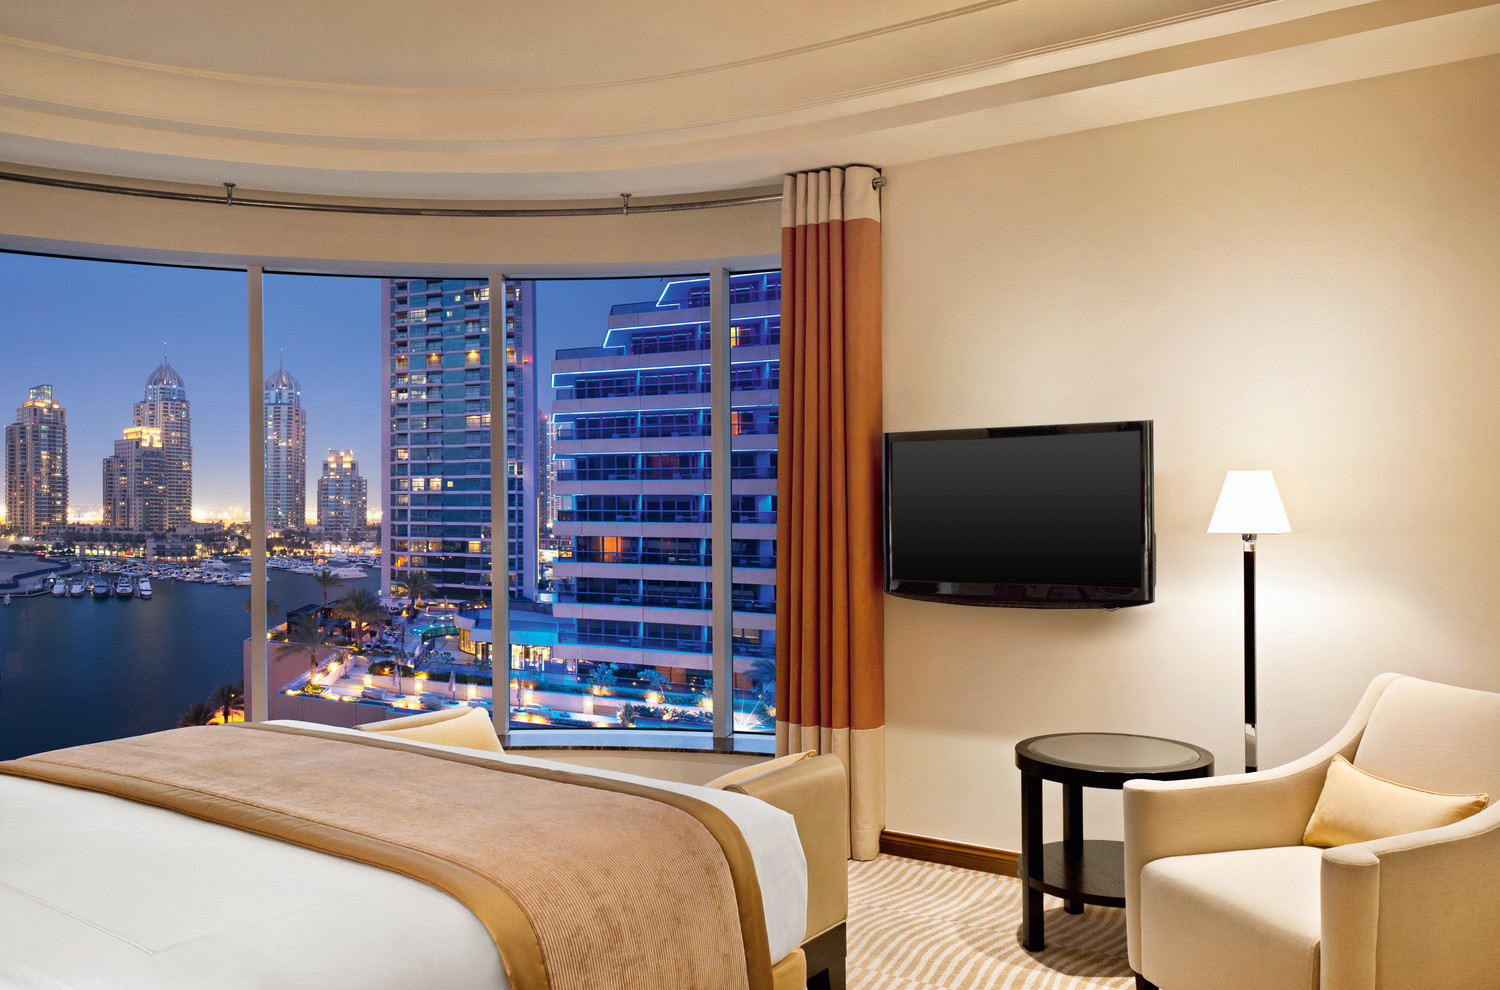 Grosvenor house dubai luxurious getaway for fun loving people the lux traveller for Hotels that offer 2 bedroom suites